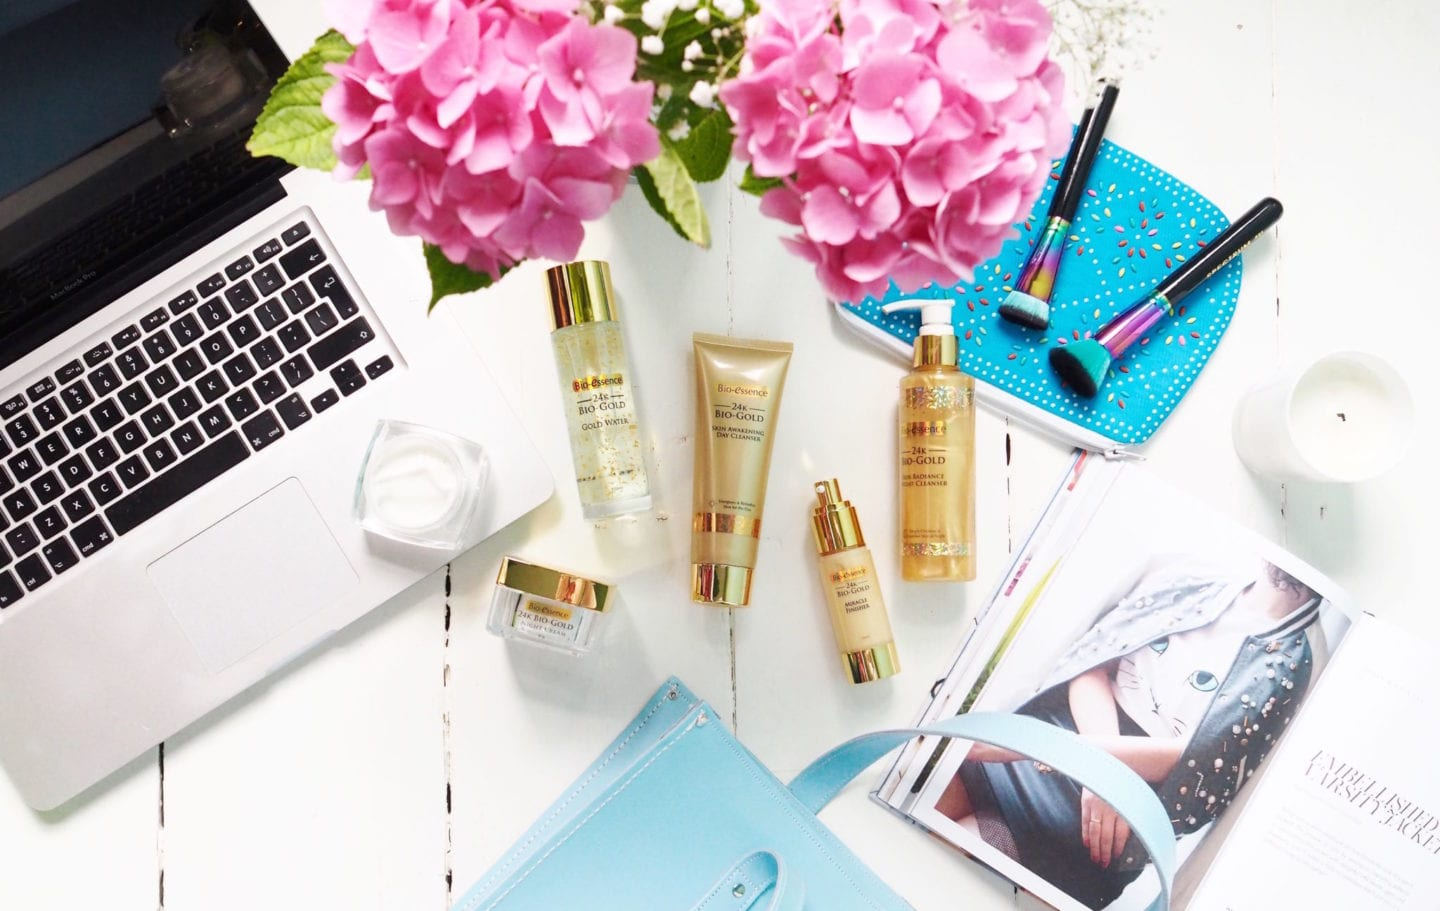 24k gold skin care flatlay skincare review